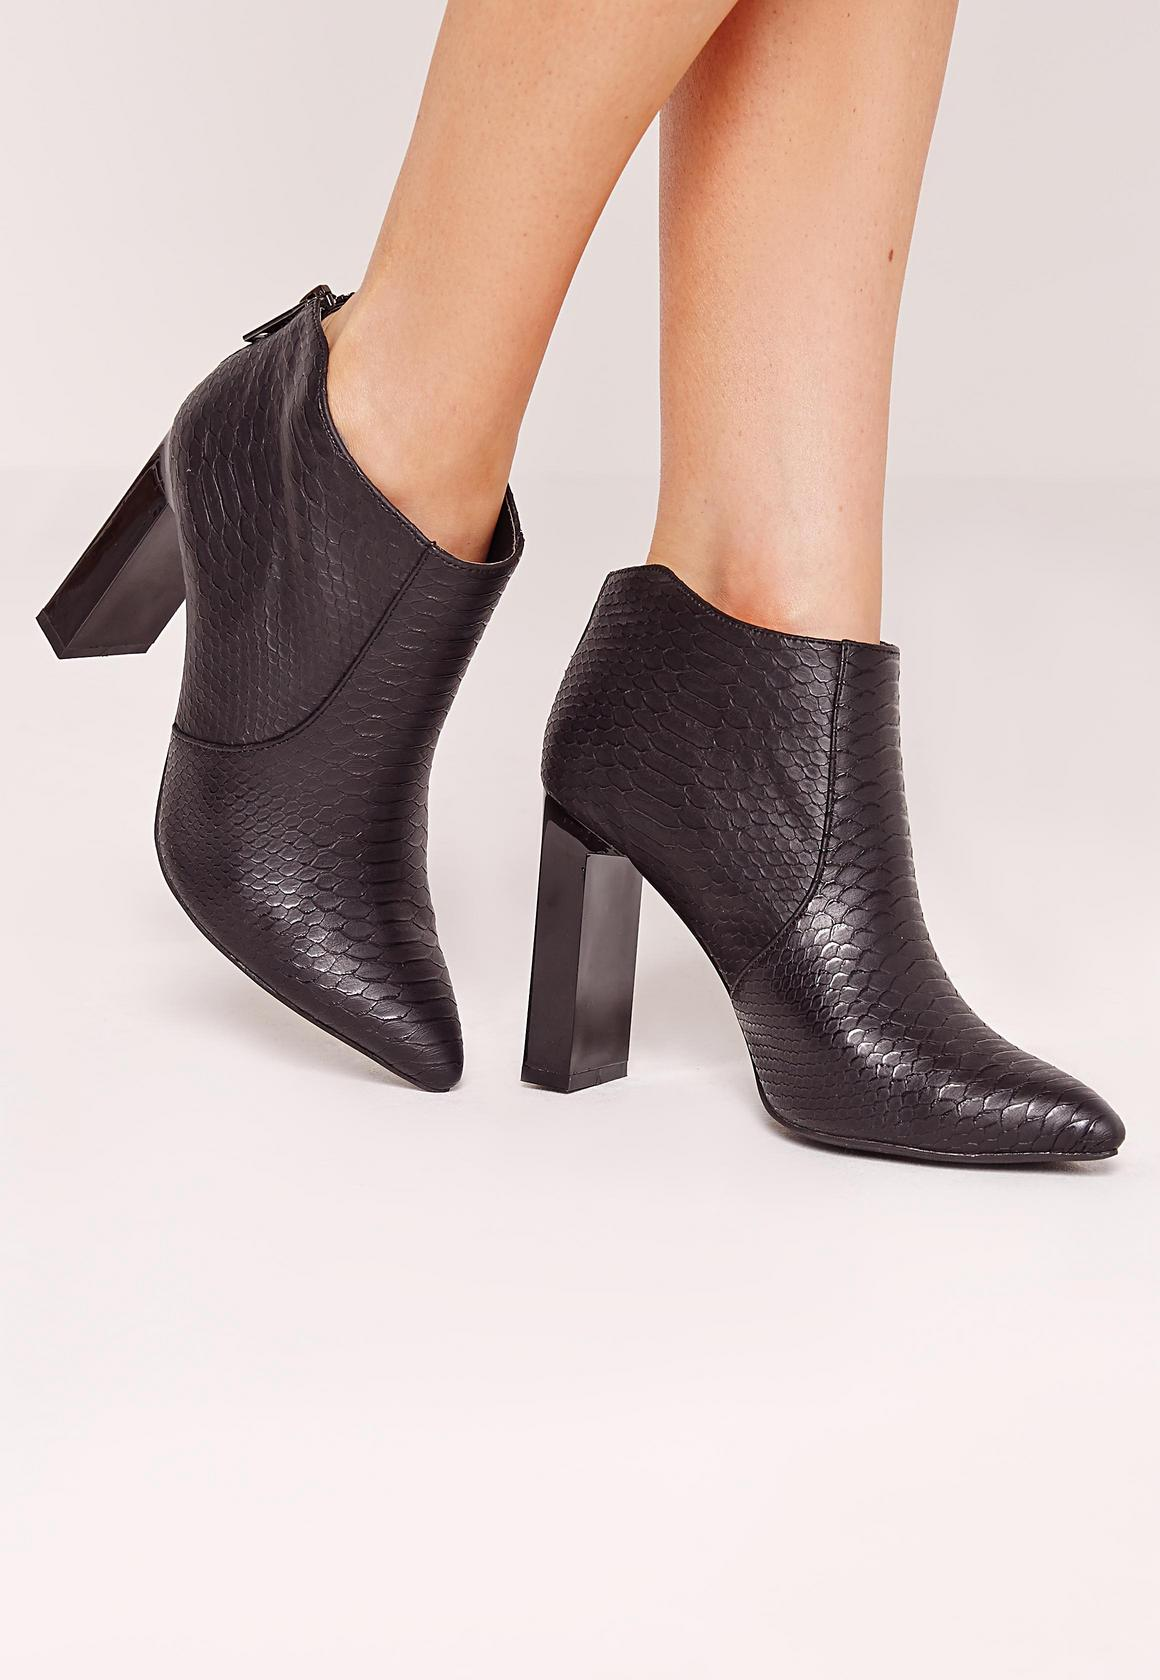 bottines noires effet croco à talon carré | missguided